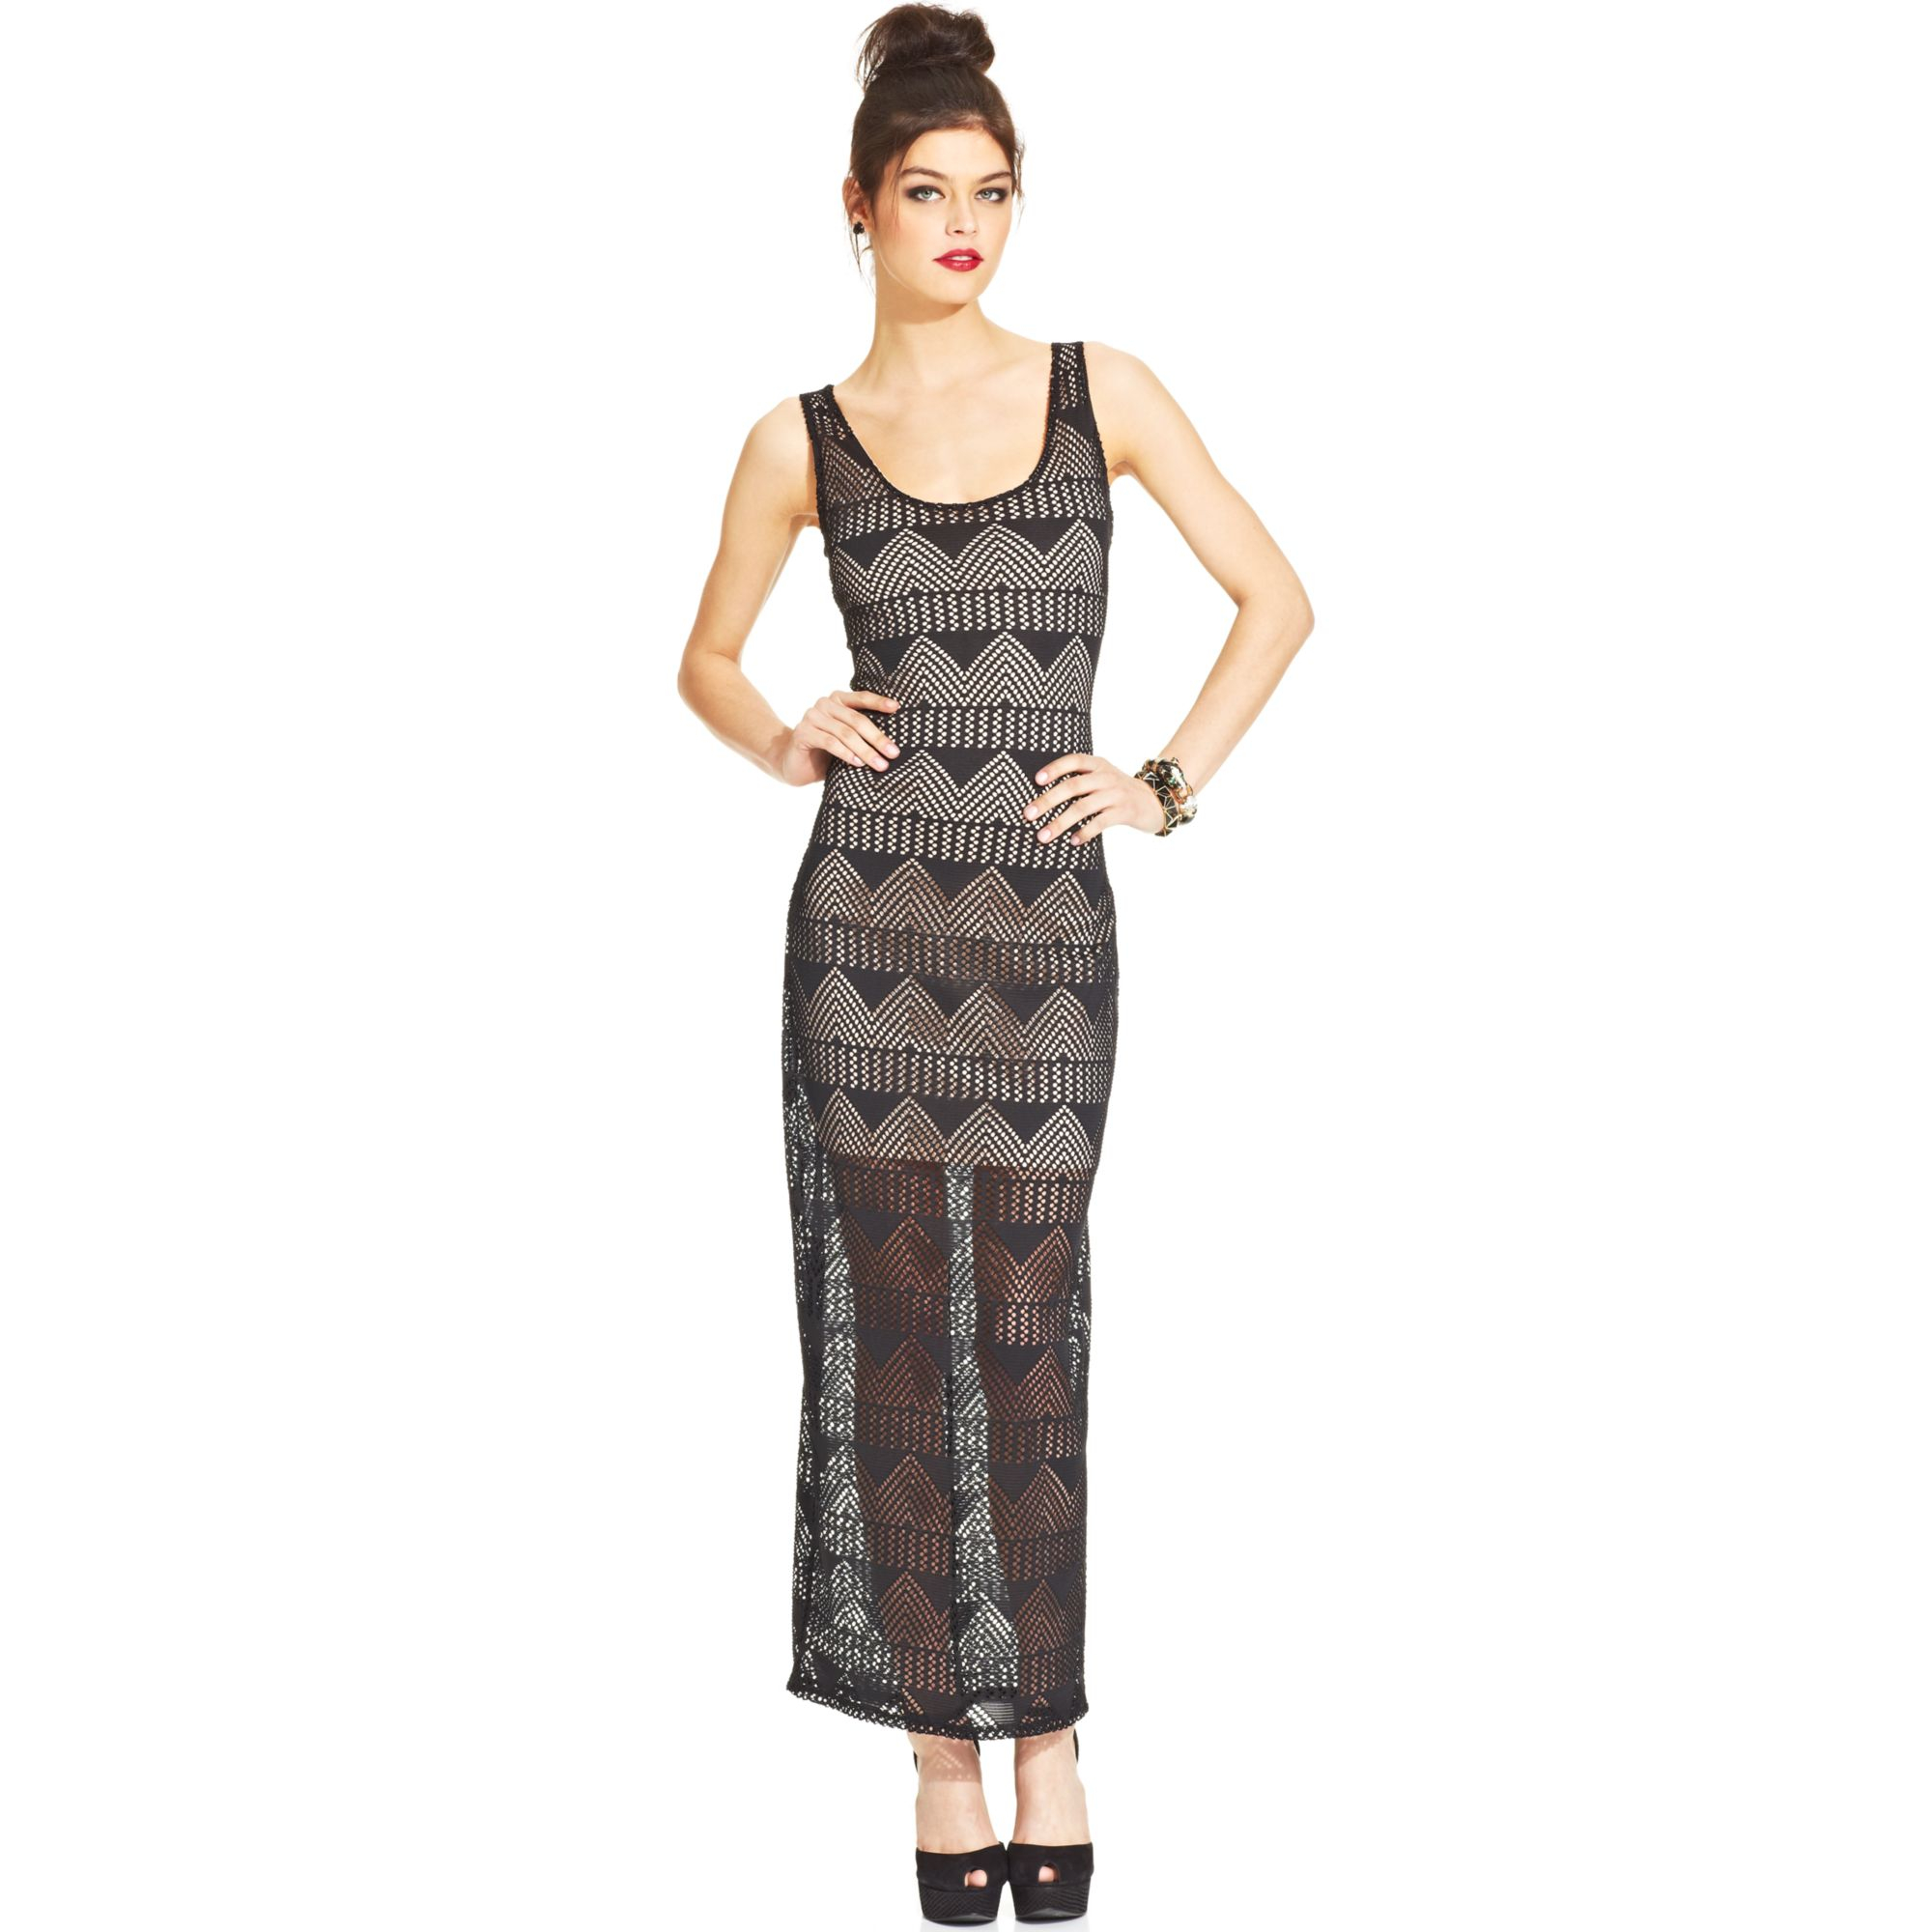 06502760b013 Lyst - Material Girl Juniors Lace Illusion Maxi Dress in Black